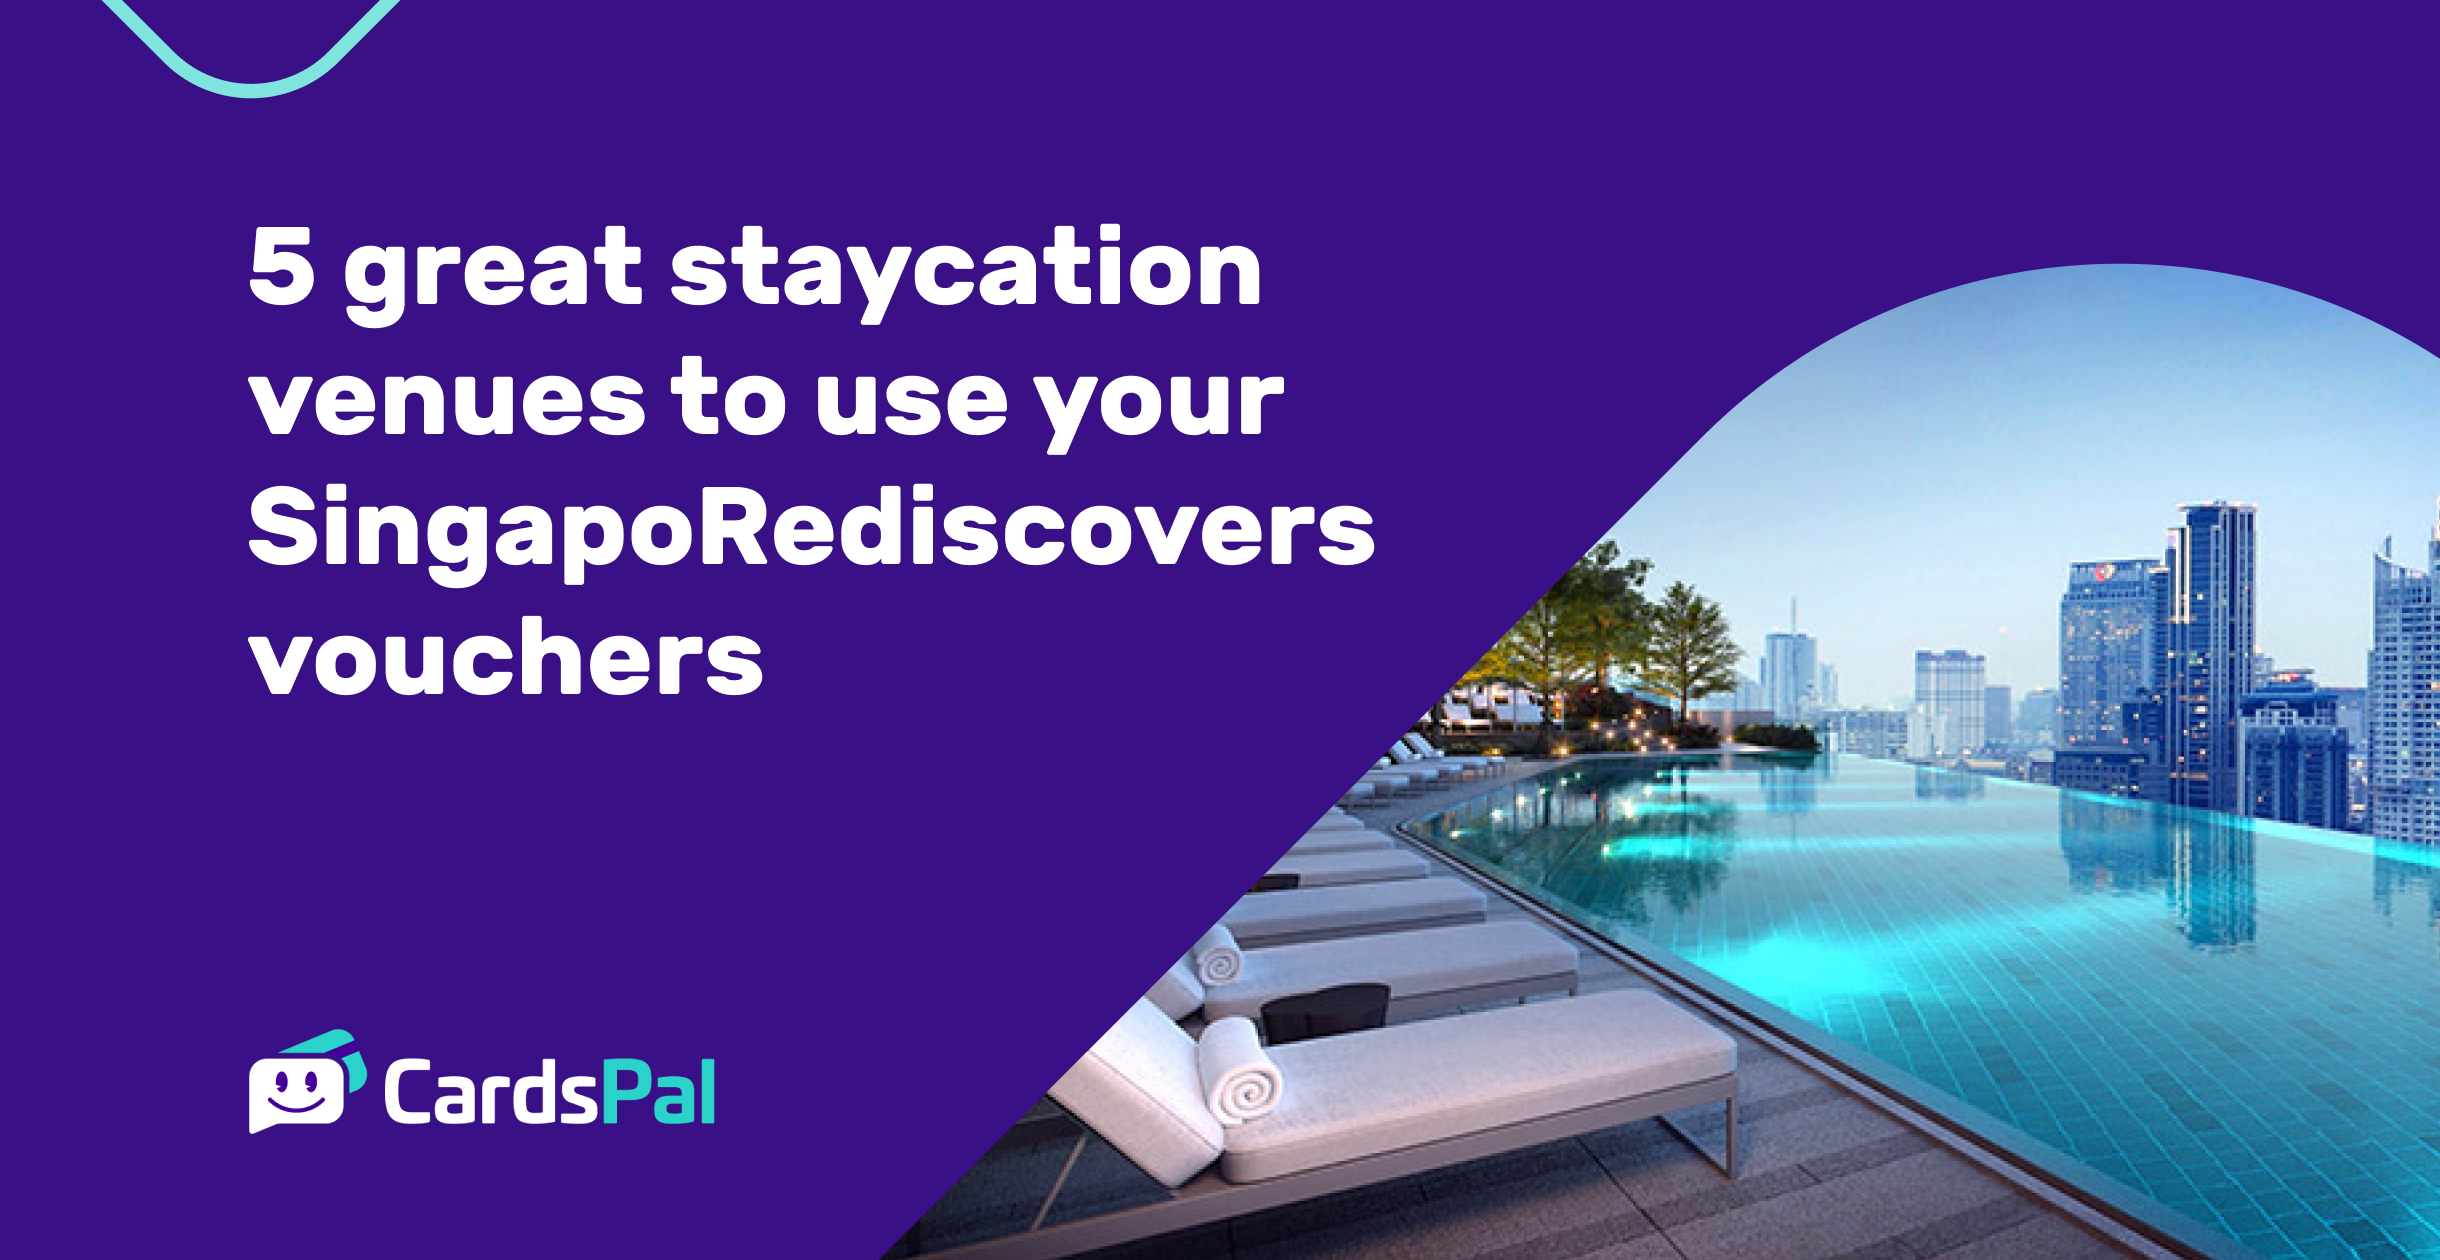 5 great staycation venues to use your SingapoRediscovers vouchers